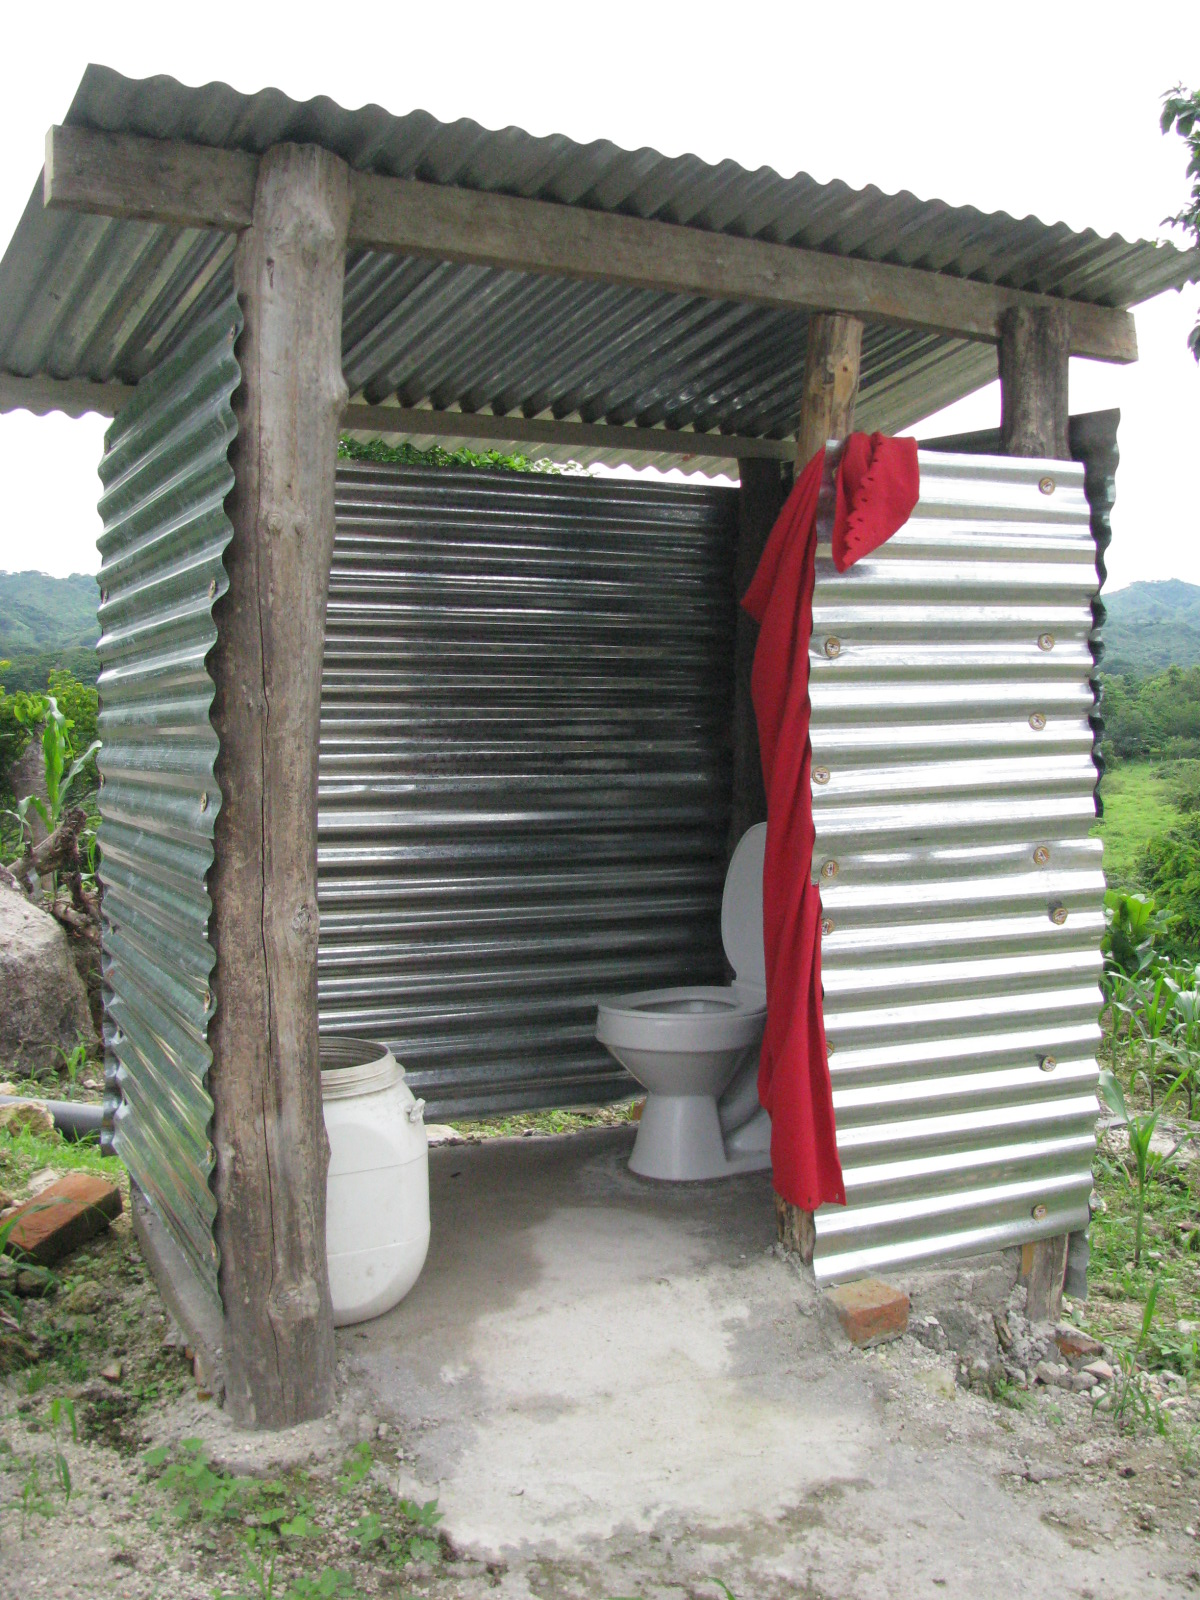 Outhouse With Flushing Toilet